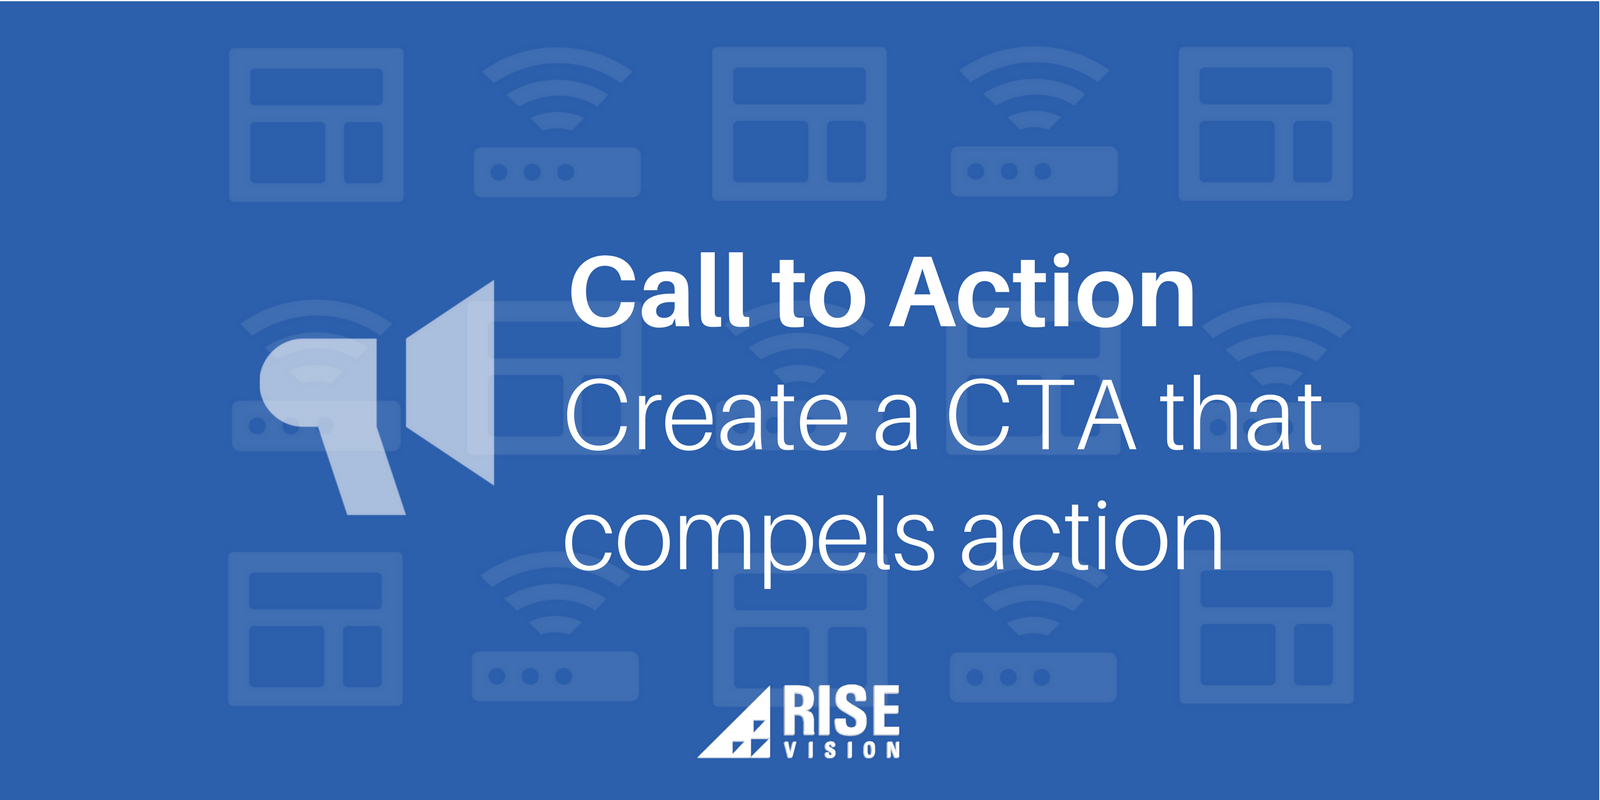 Rise Vision Digital Signage Content Call to Action.png